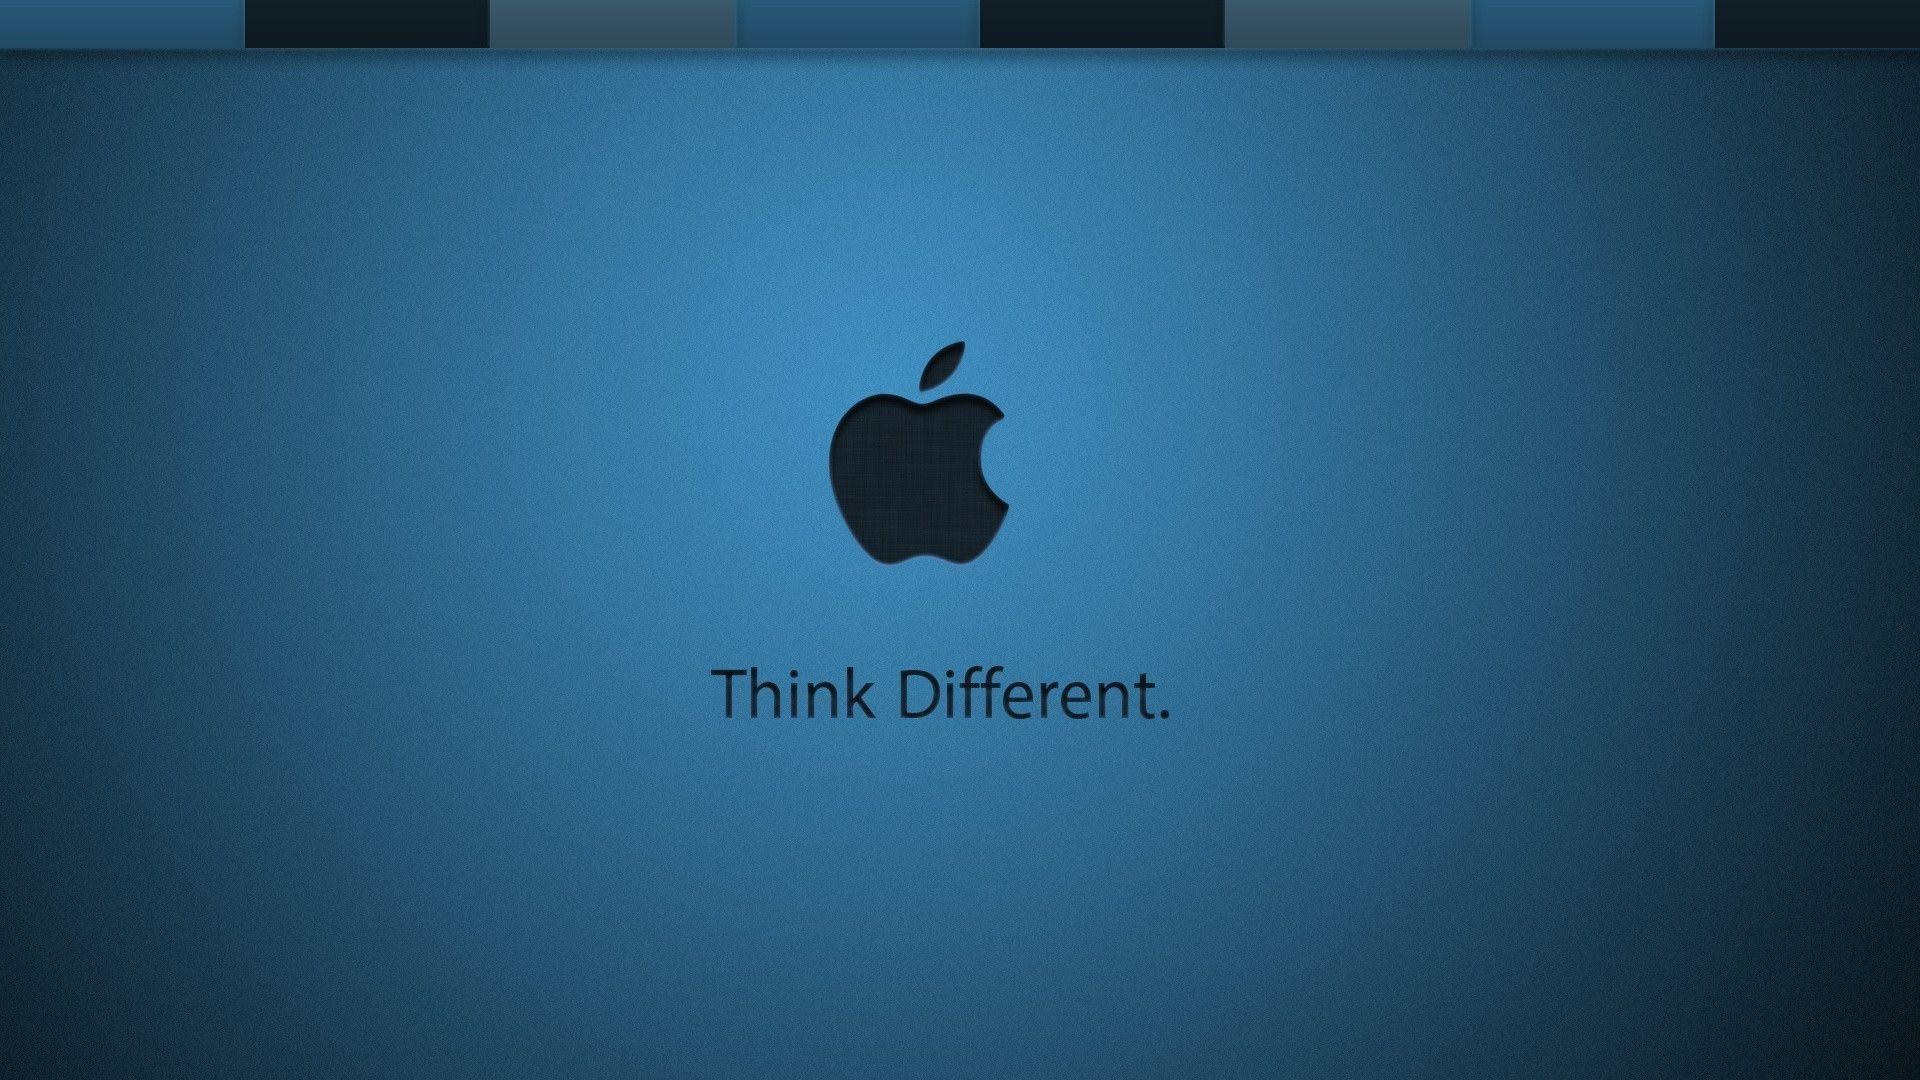 Think different wallpaper wallpapers for free download about